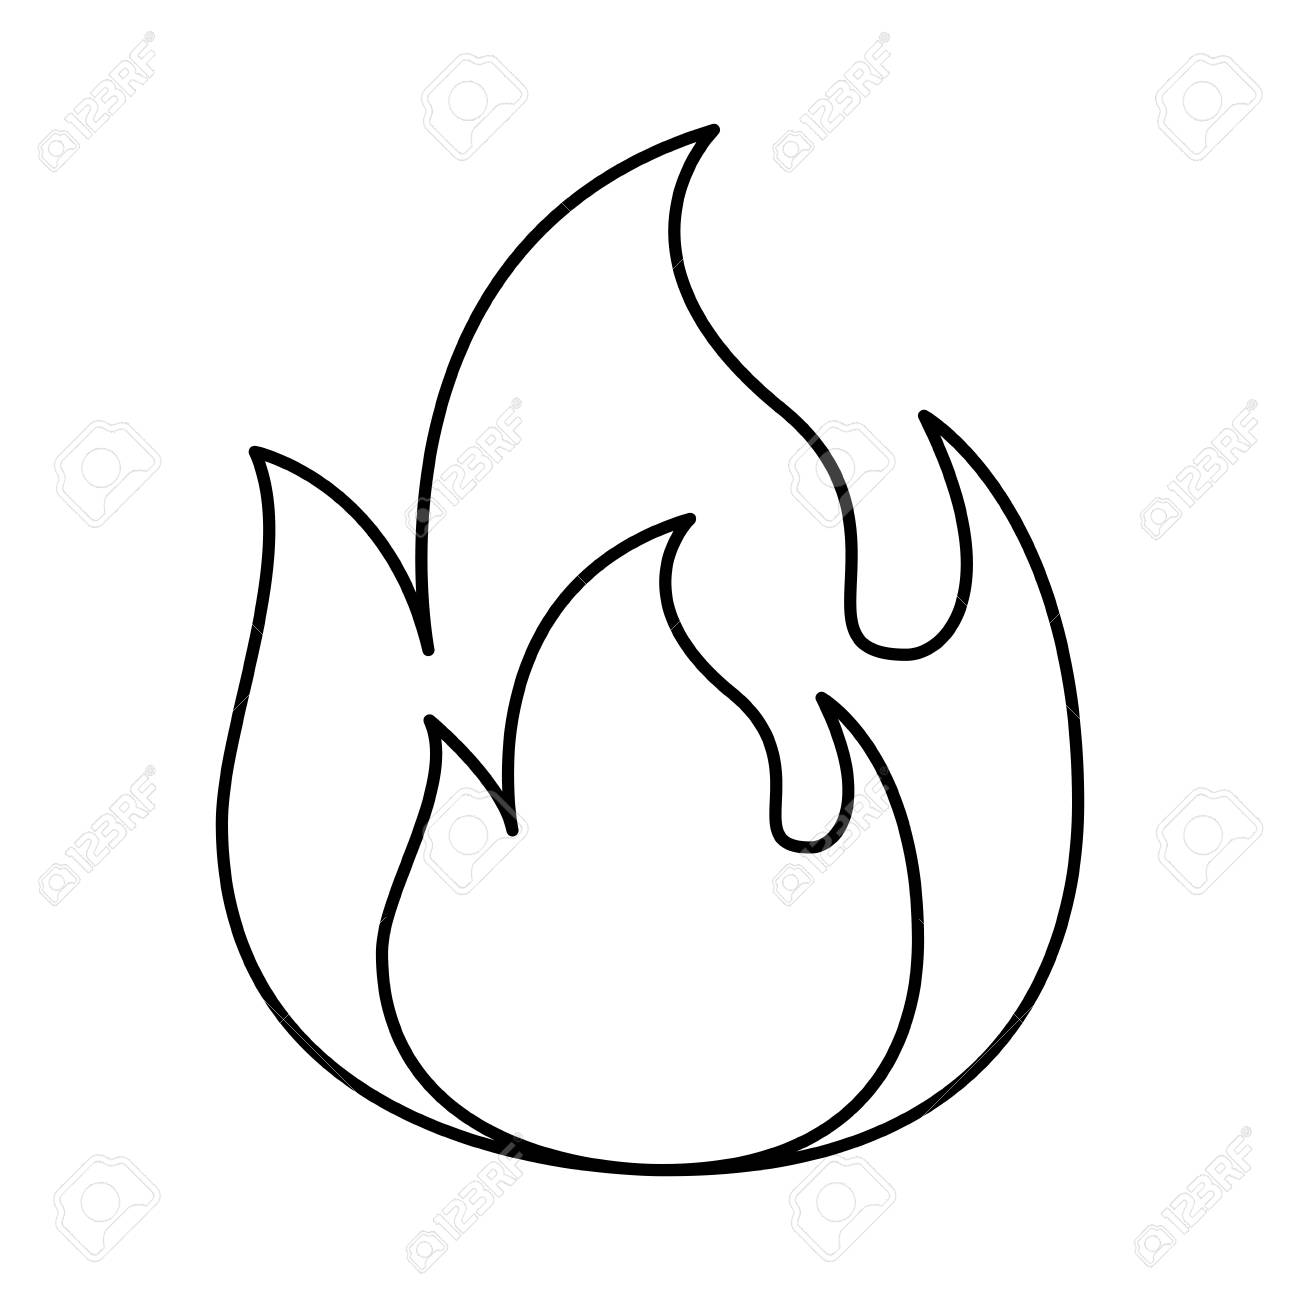 Flame Clipart Traceable Flame Traceable Transparent Free